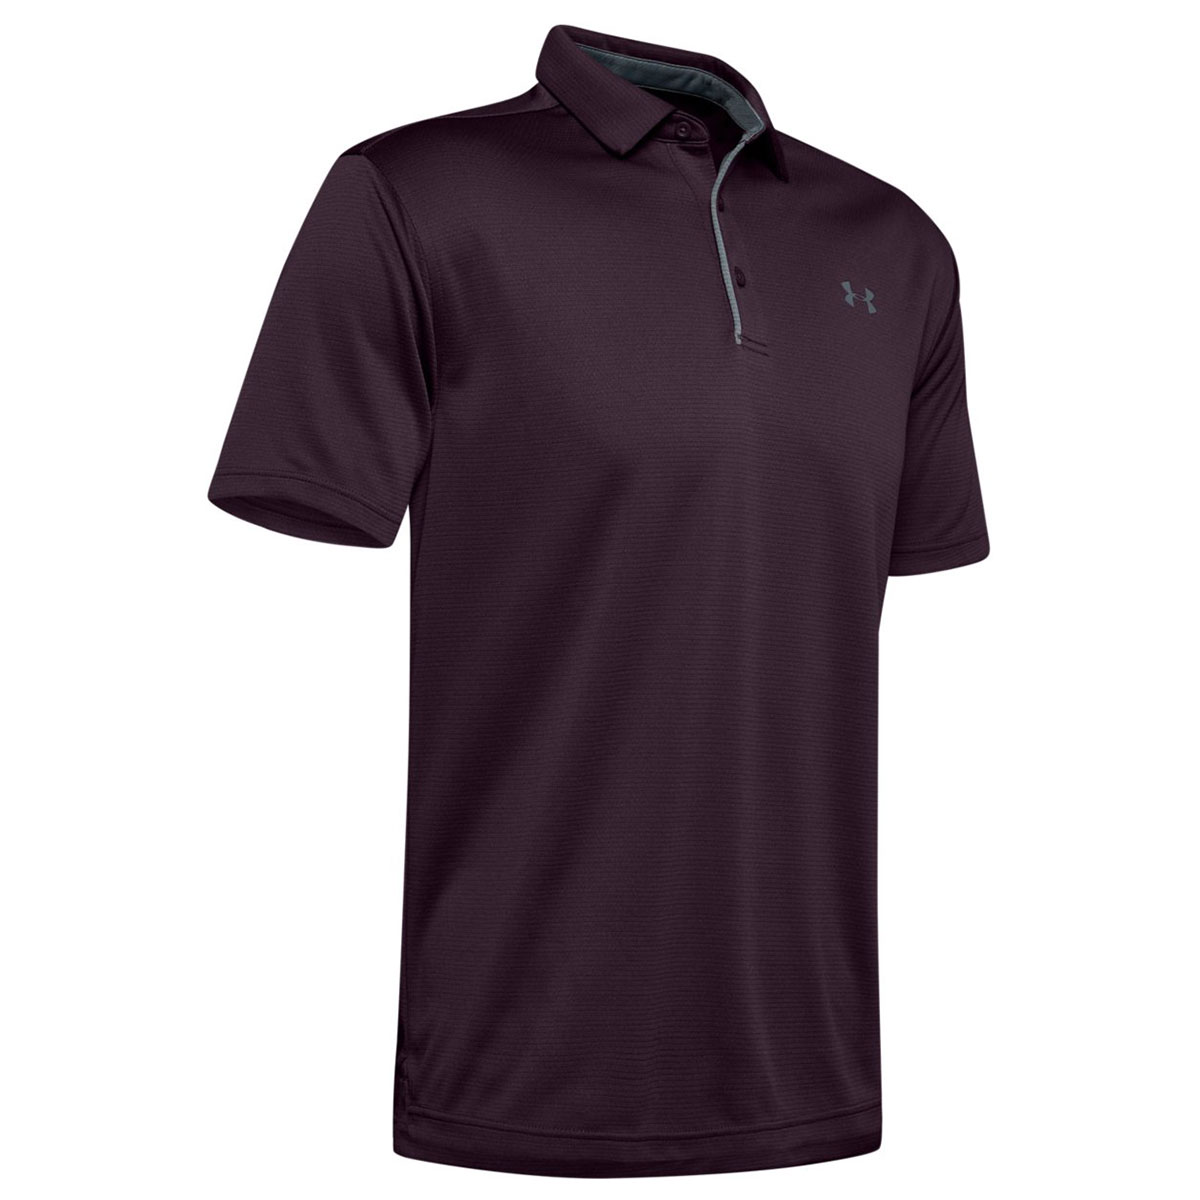 Under-Armour-Mens-Golf-Tech-Wicking-Textured-Soft-Light-Polo-Shirt thumbnail 42